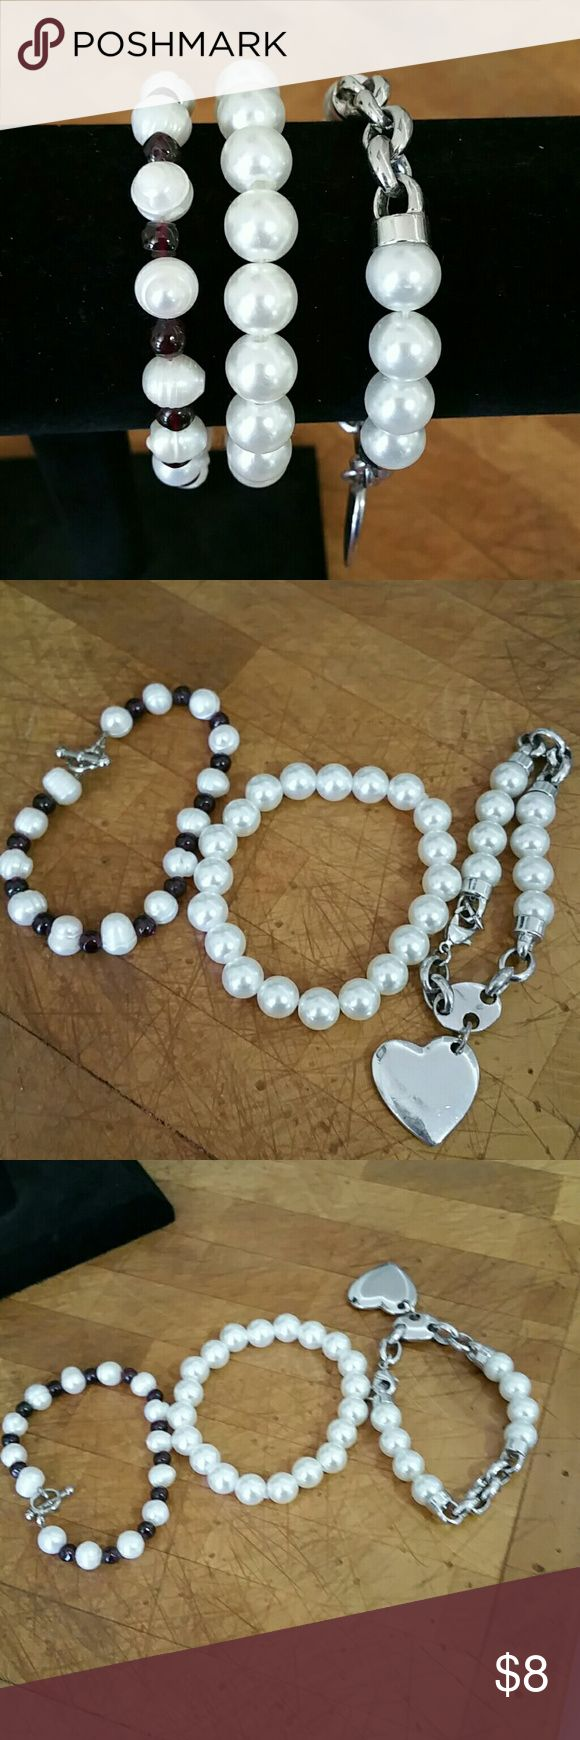 LADIES PEARL BRACELETS. LADIES  PEARL BRACELETS, 1 HAS HEART PENDANT,  1 HAS DARK STONES BETWEEN PEARLS,  ONE SIZE, 2 HAS CLOSURES ONE STRETCHES. PEARLS Jewelry Bracelets